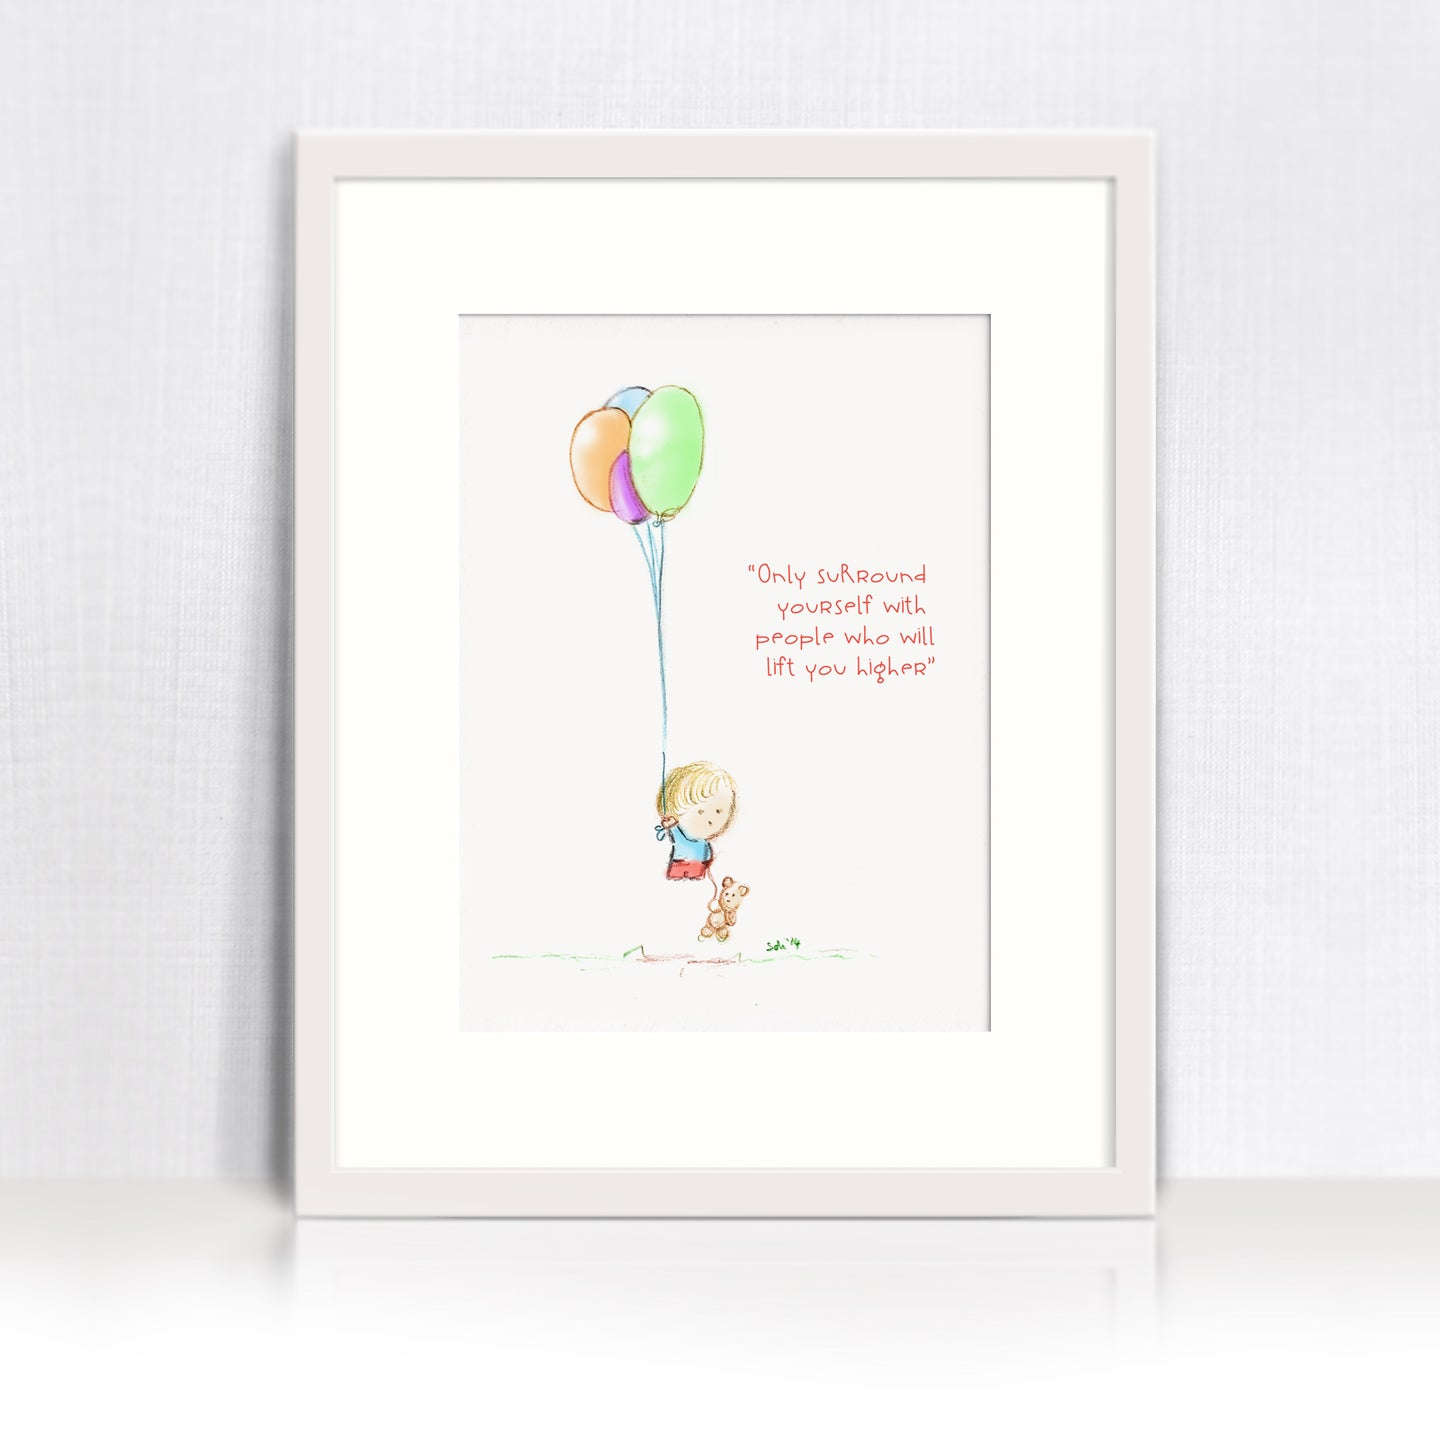 Aim High - Inspirational art print